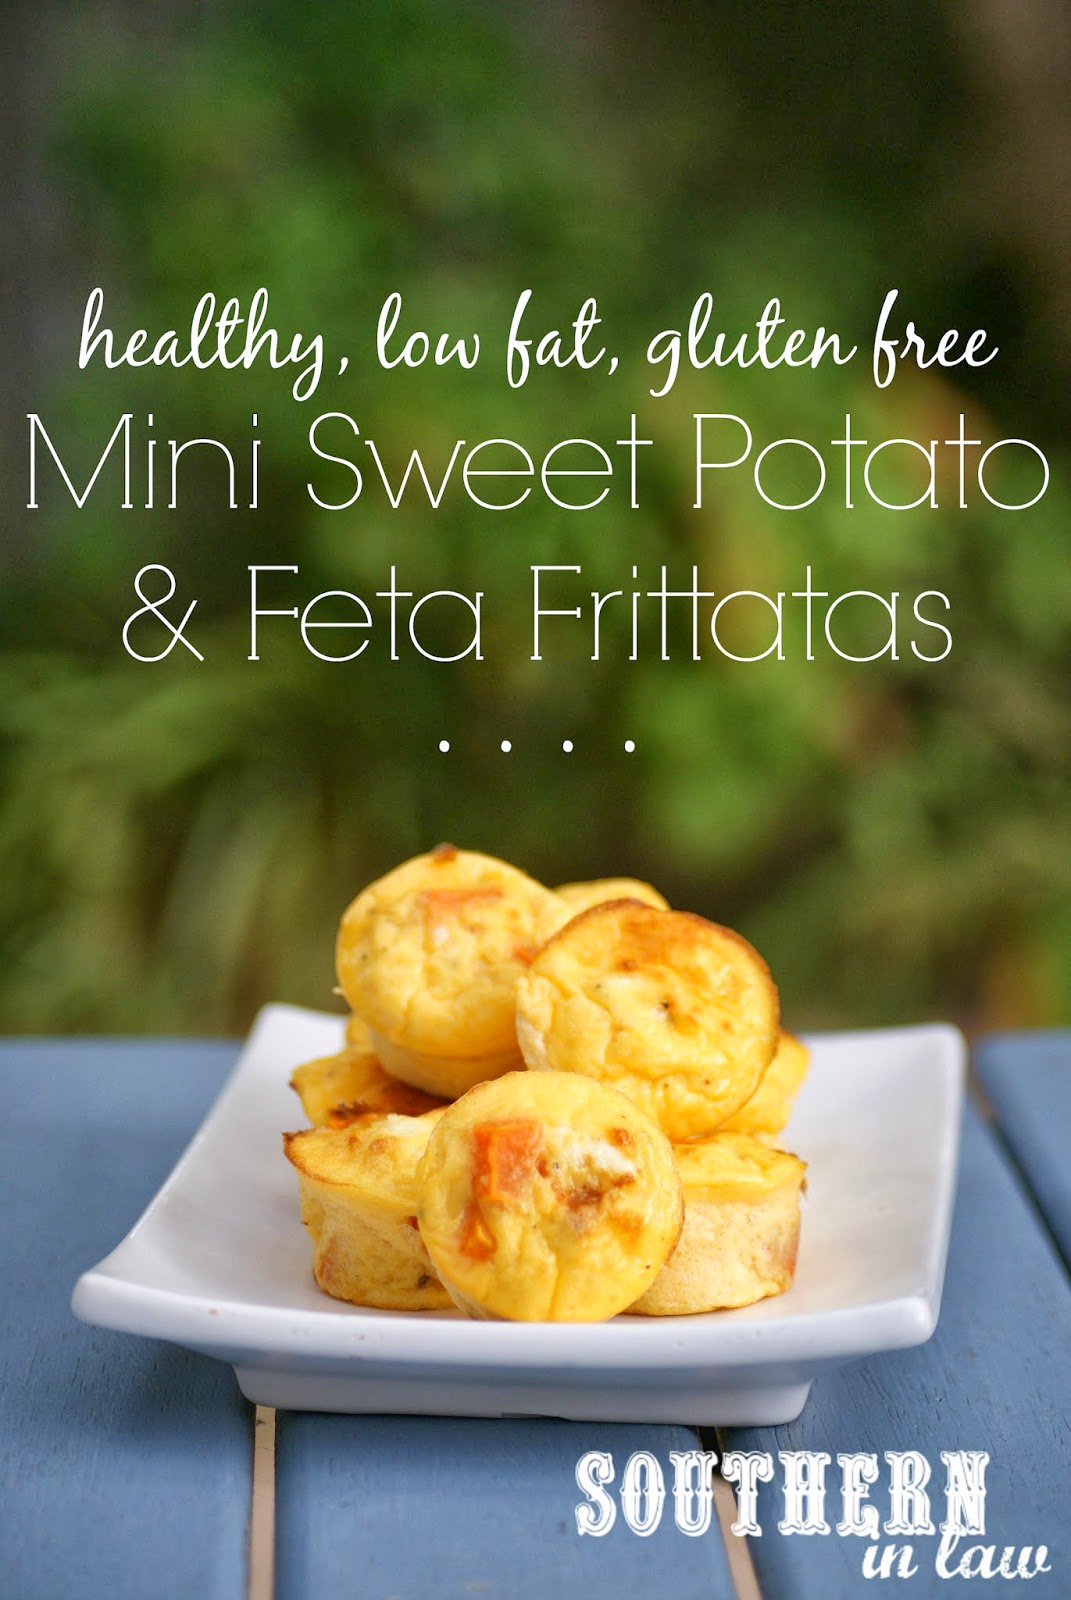 Mini Sweet Potato and Feta Frittatas - Healthy, low fat, gluten free, low carb, paleo, clean eating friendly